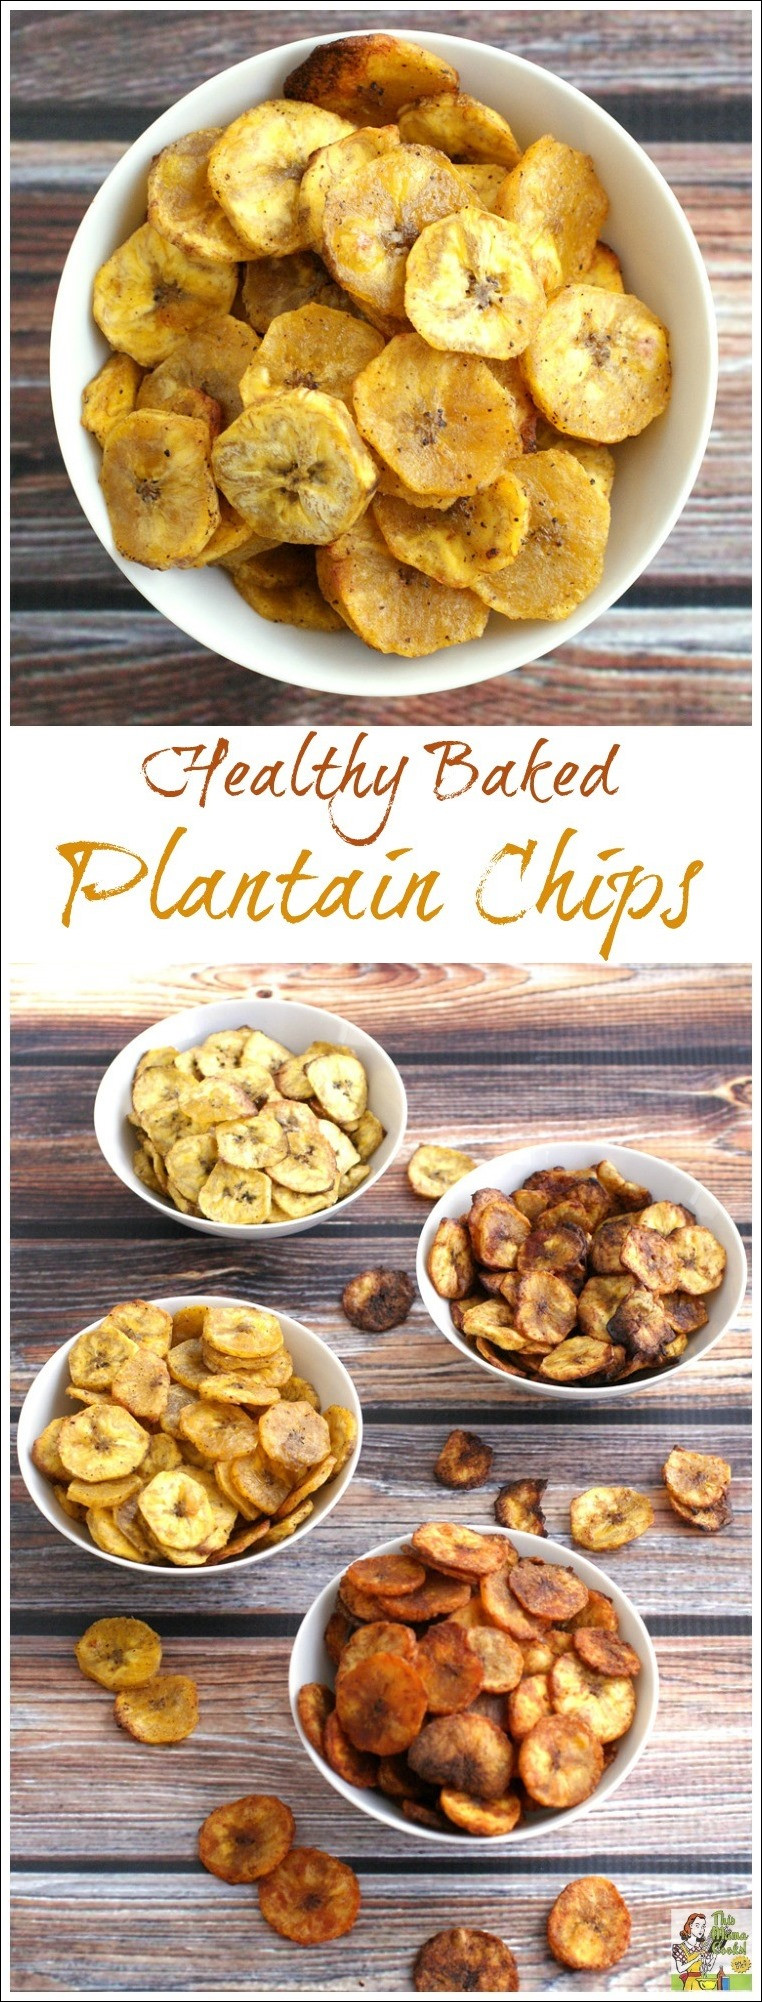 Healthy Baked Snacks  Healthy Baked Plantain Chips Four Ways